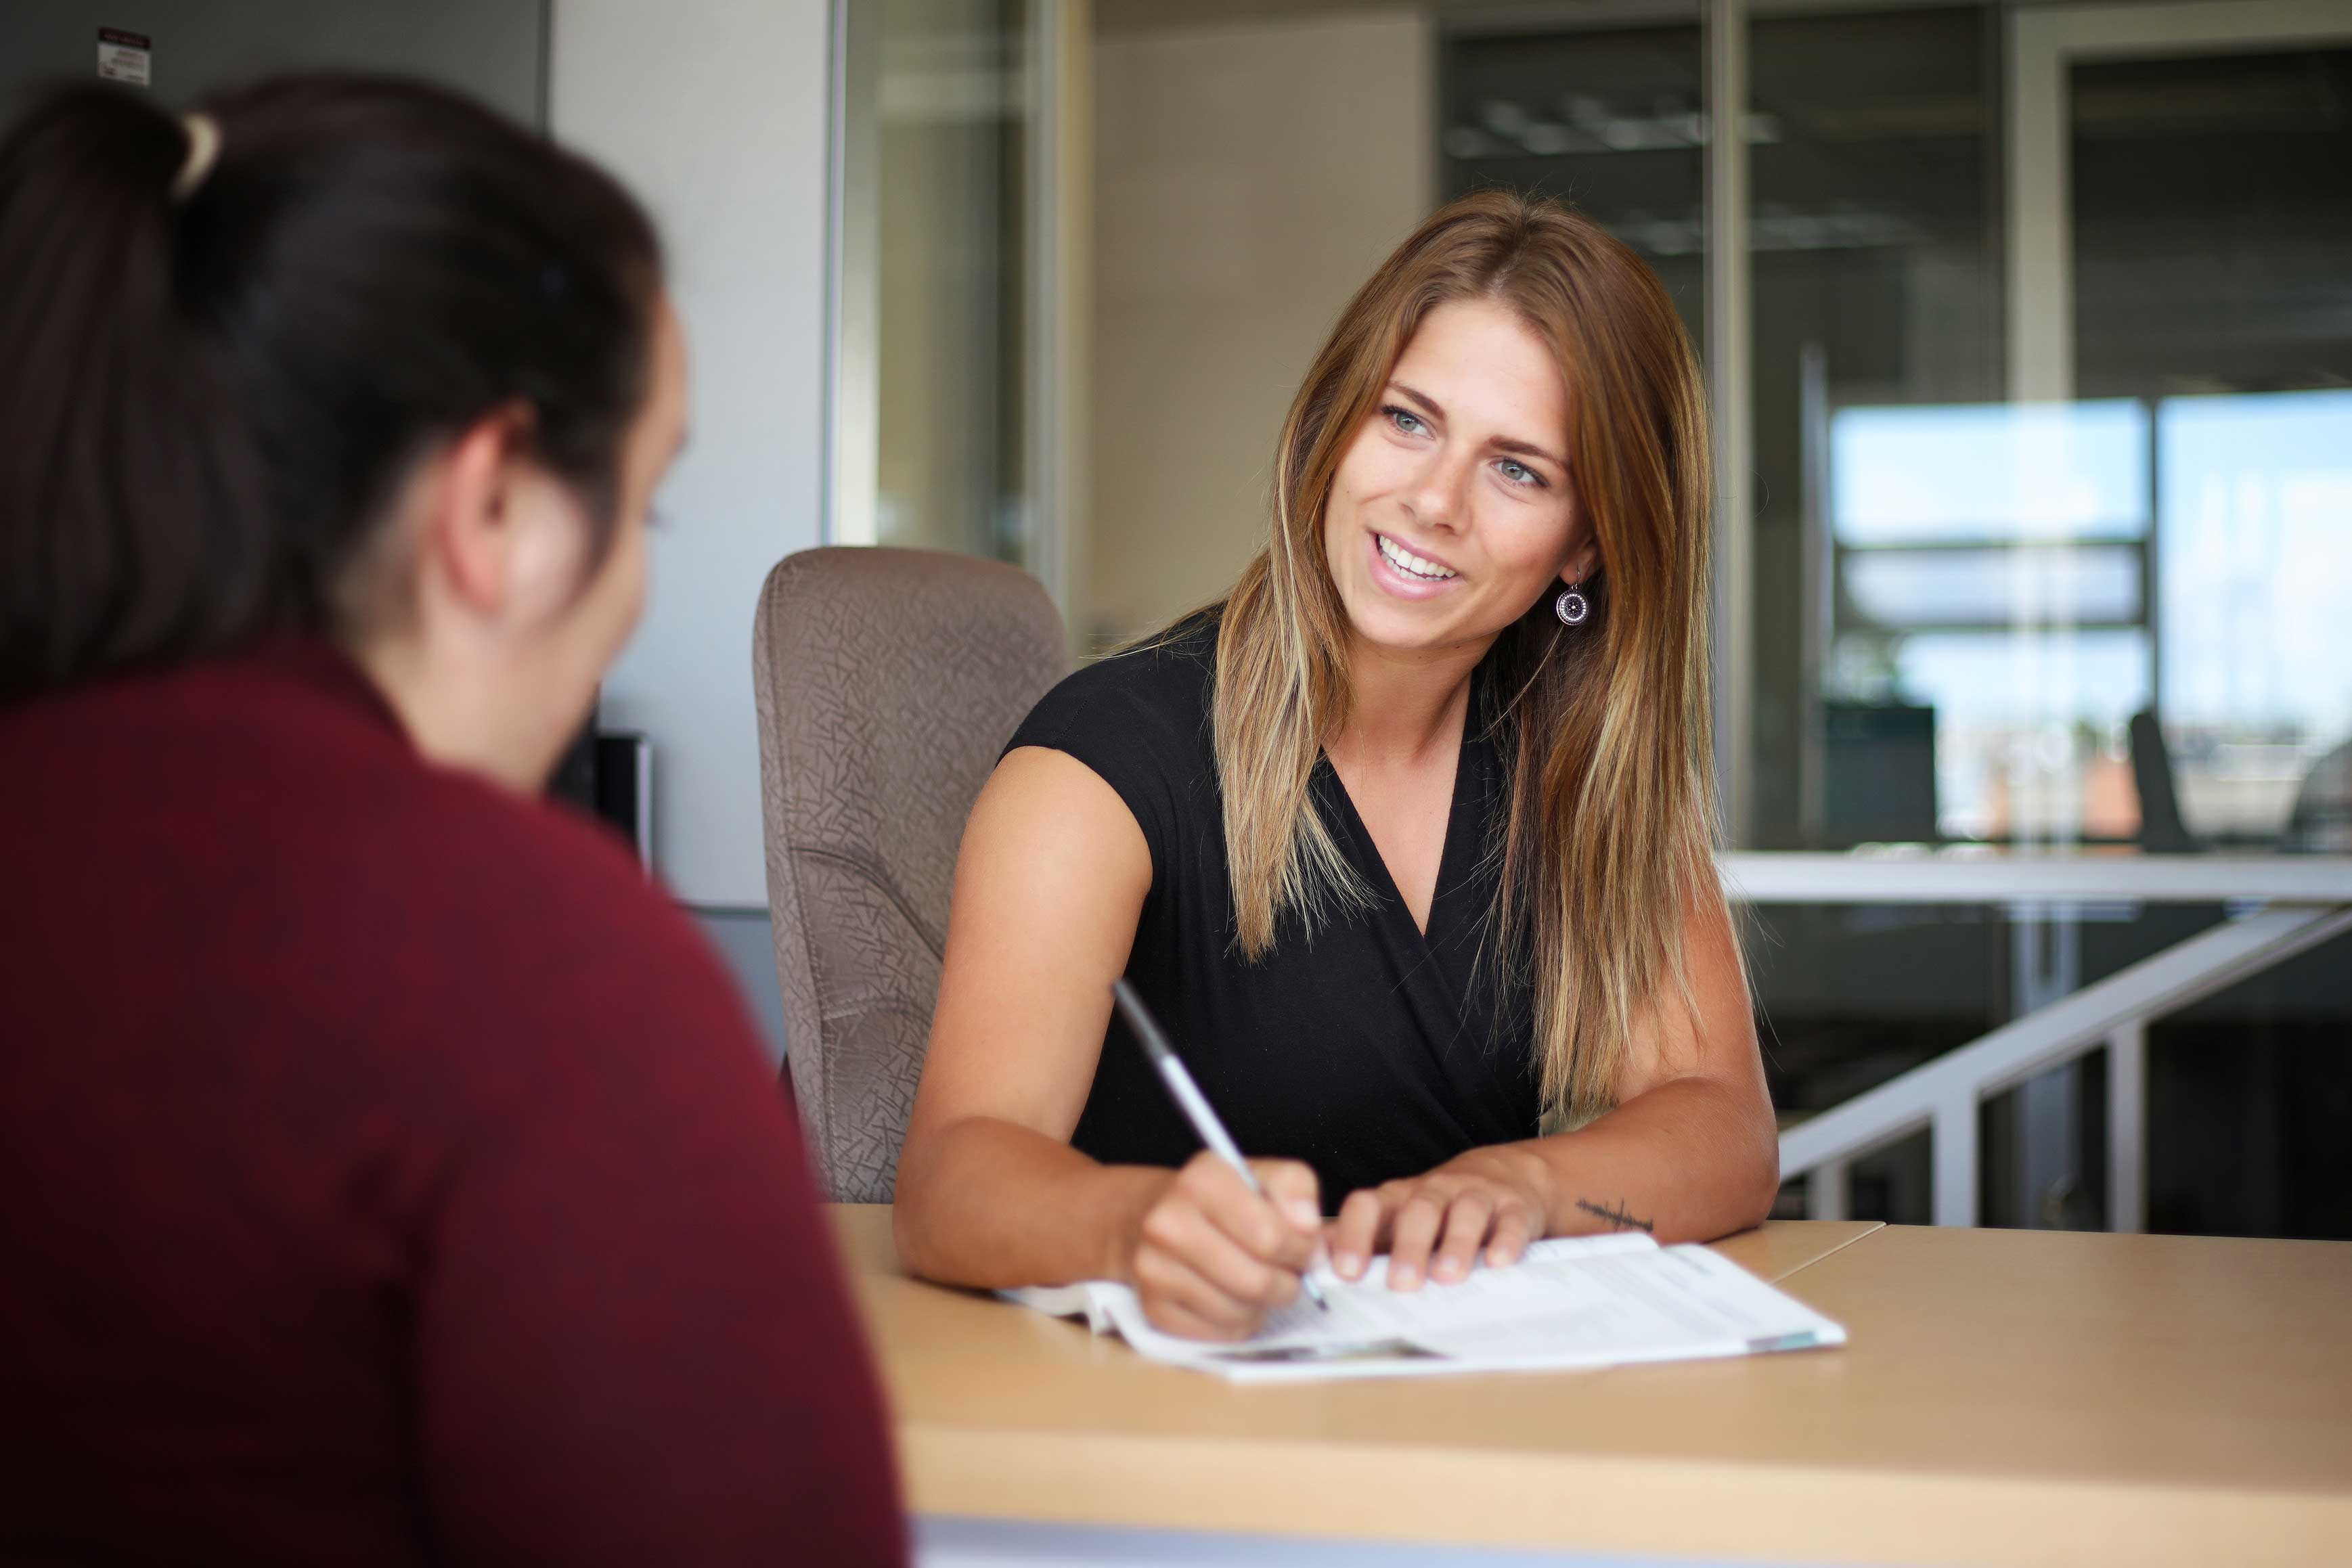 Woman at admissions desk